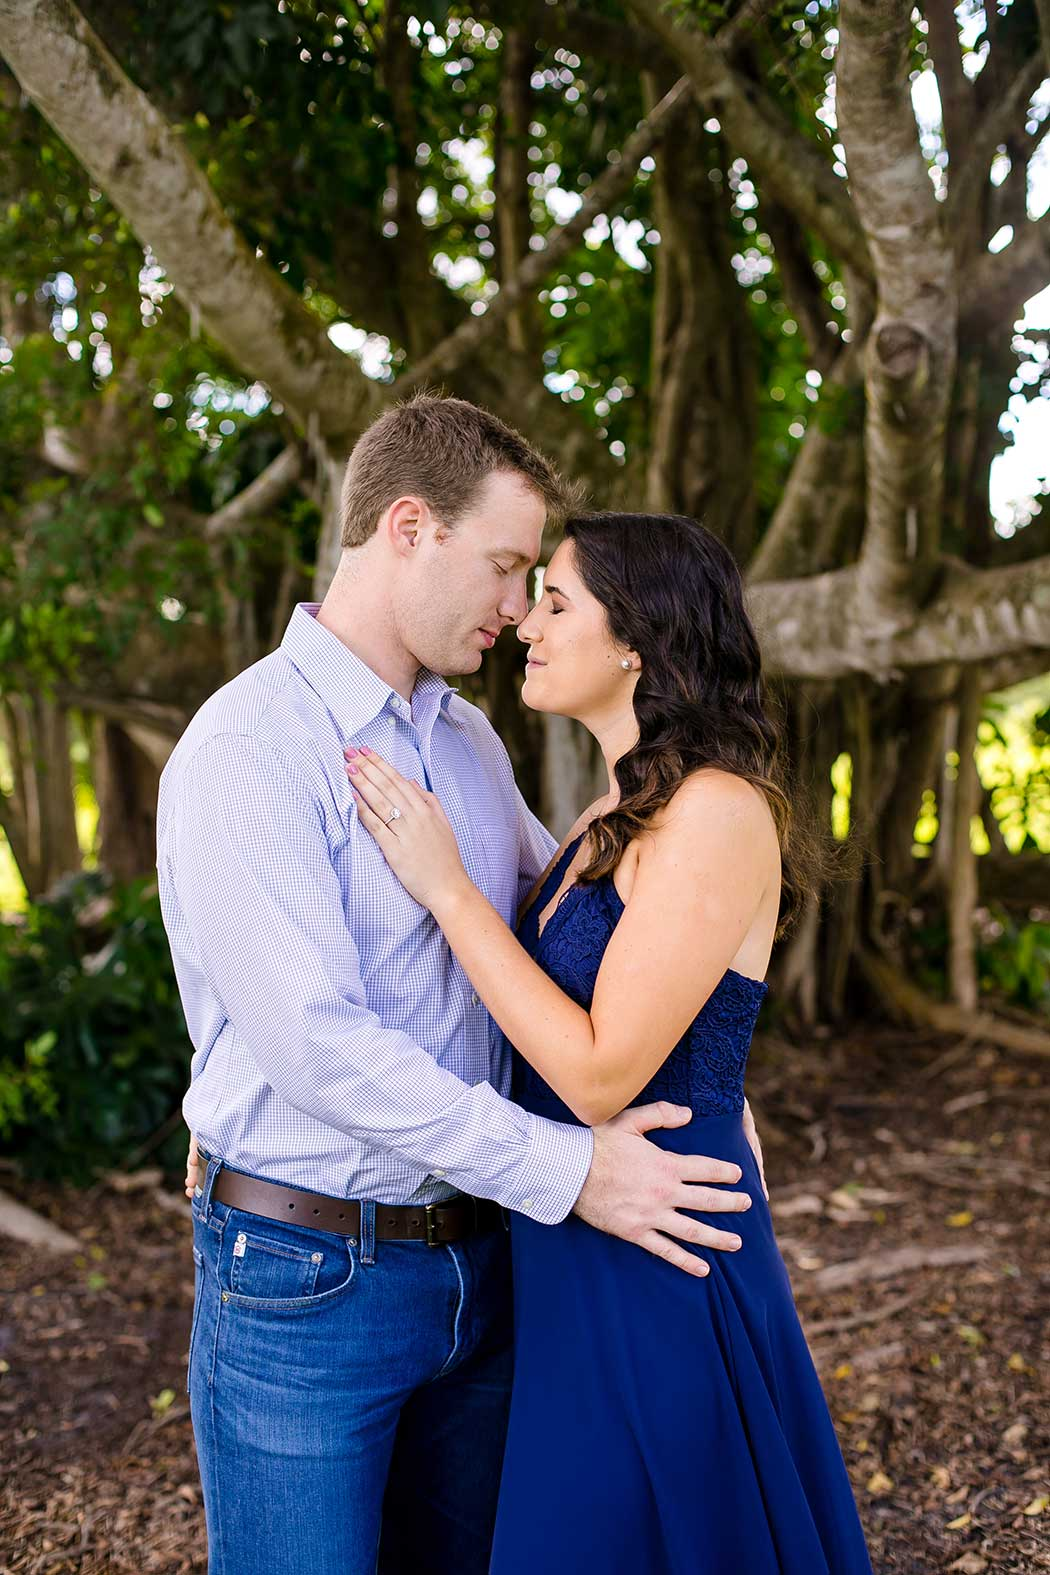 unique fun picture of engagement session in park with large tree | engagement photographer fort lauderdale | south florida engagement photography in robbins preserve davie | elegant engagement session photos fort lauderdaley